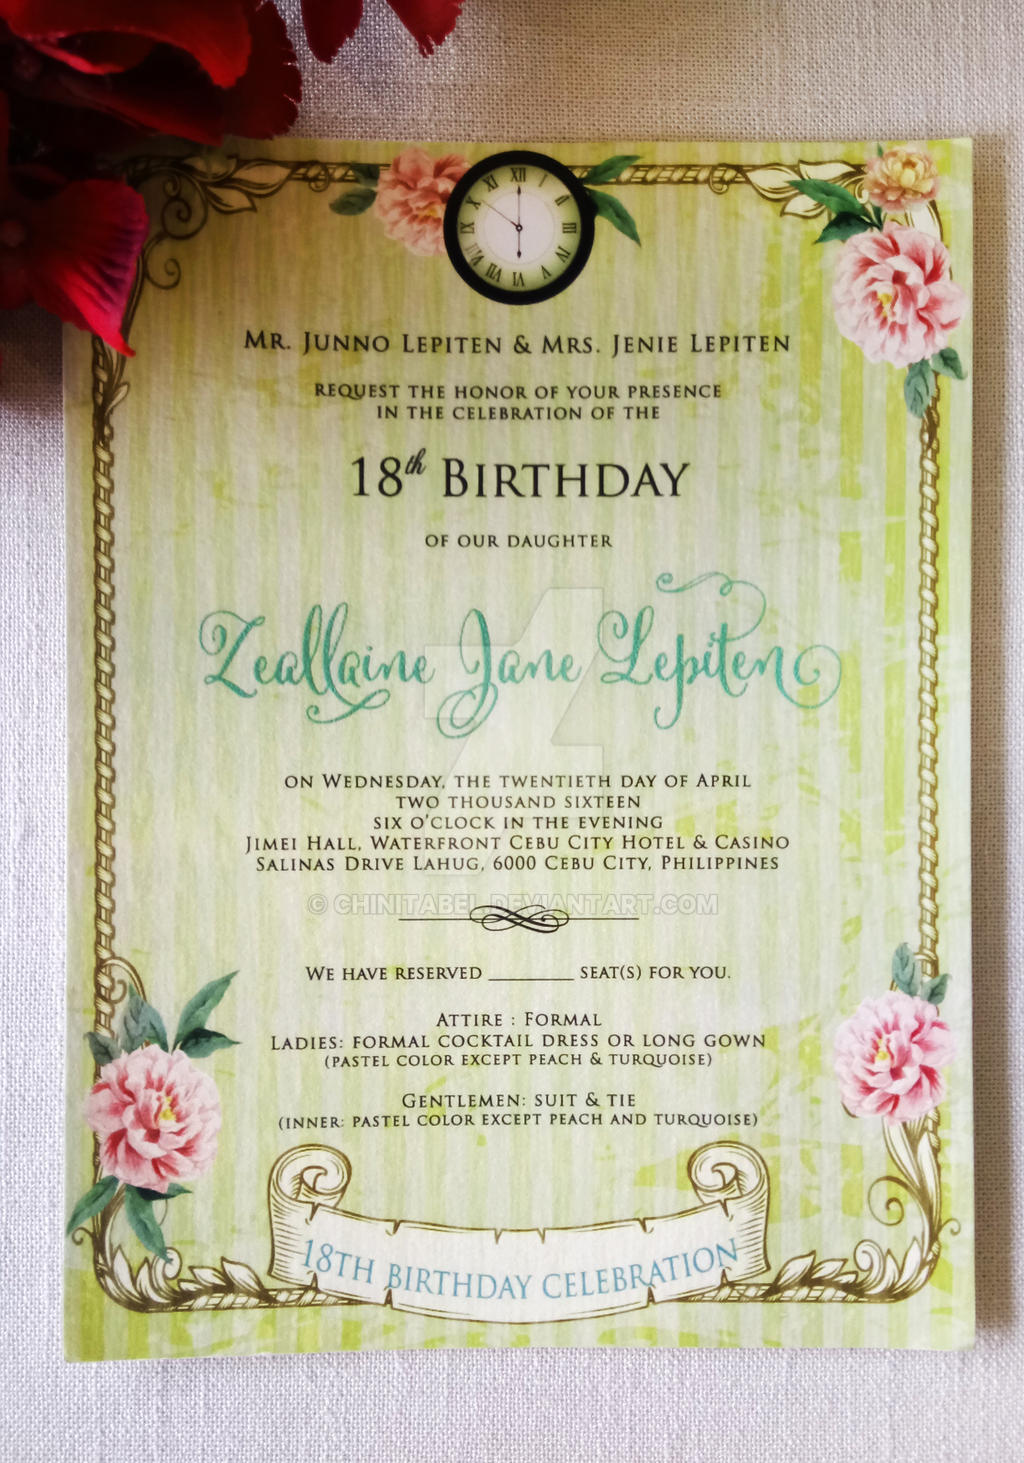 Zeallaine jane lepiten debut invite by chinitabel on deviantart zeallaine jane lepiten debut invite by chinitabel stopboris Choice Image